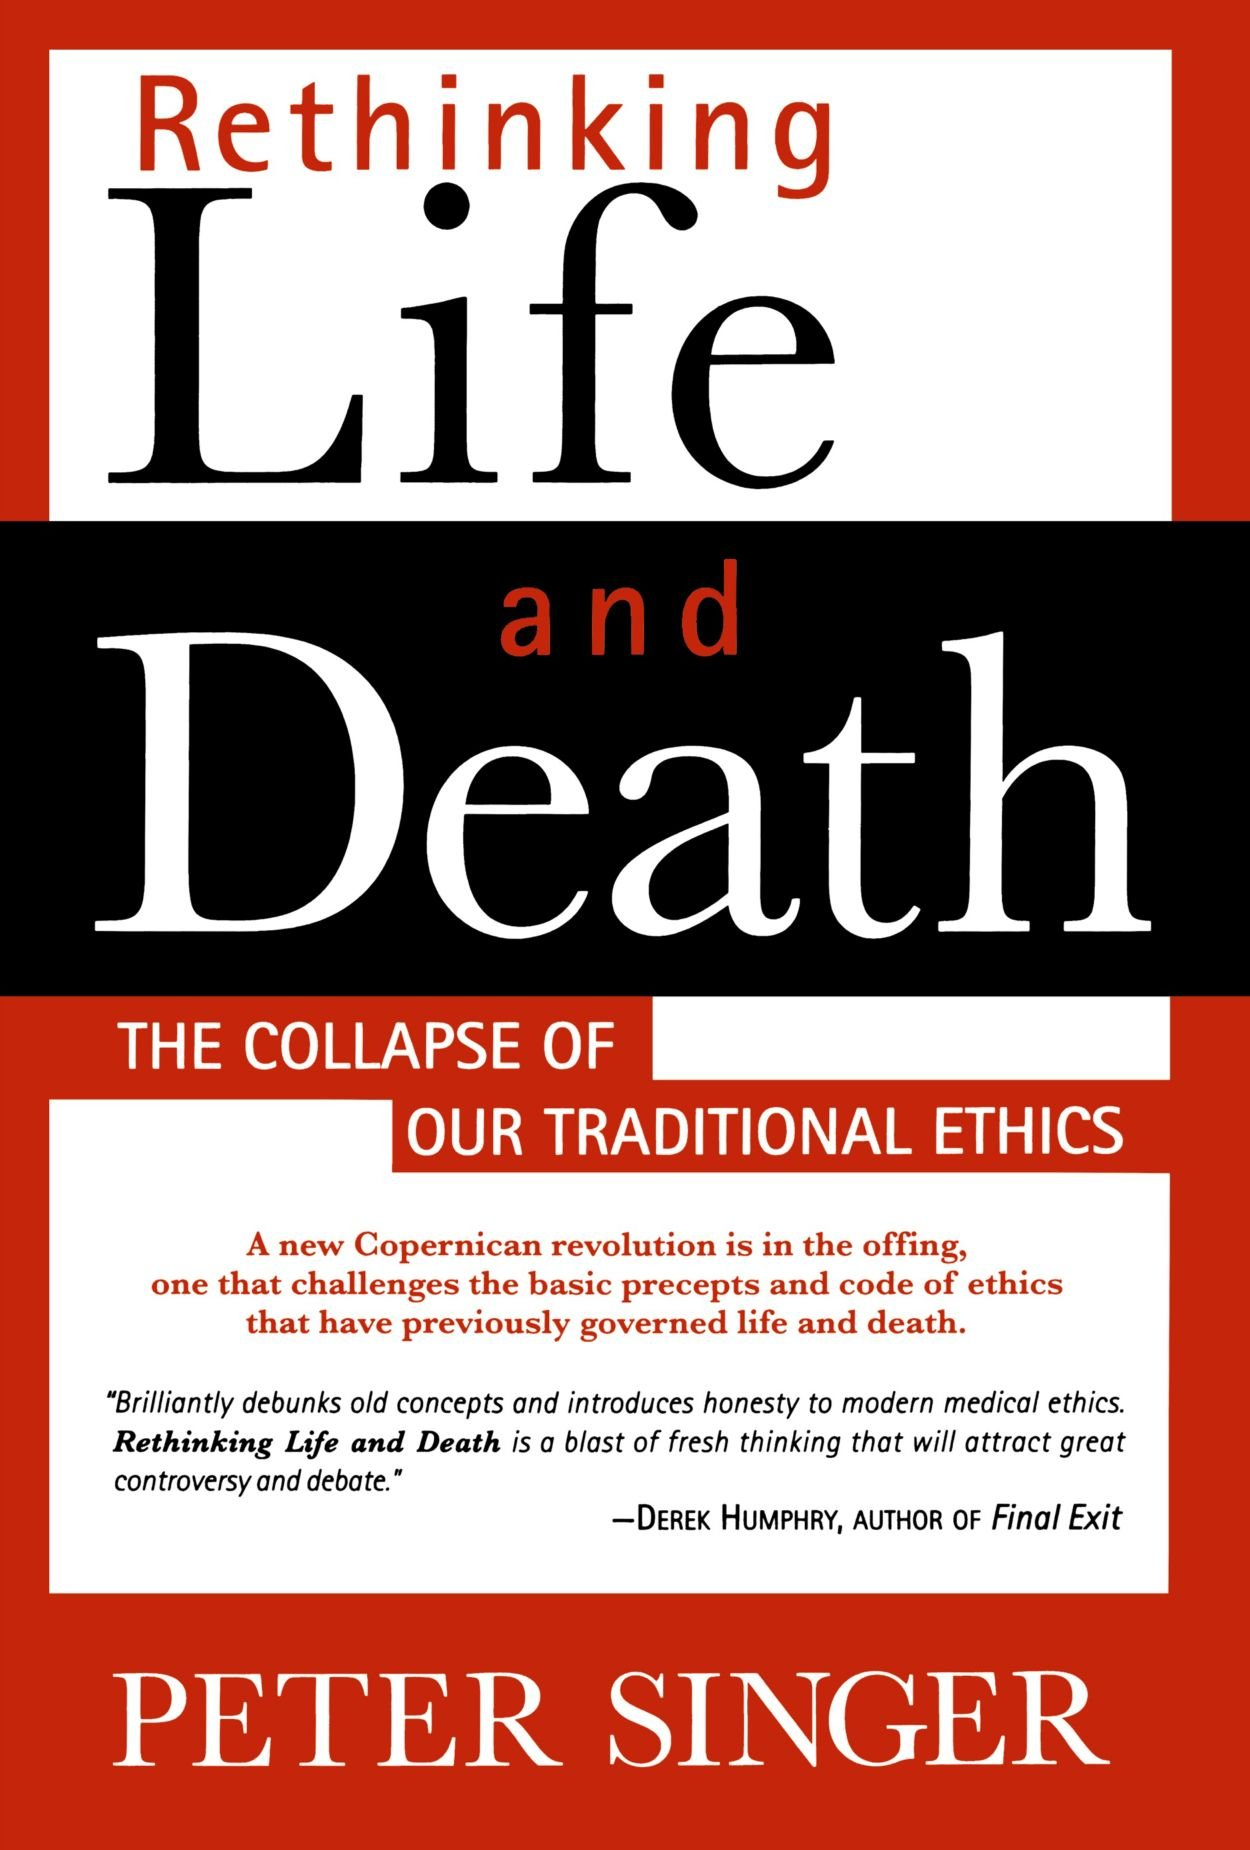 rethinking life and death the collapse of our traditional ethics rethinking life and death the collapse of our traditional ethics peter singer 9780312144012 books ca